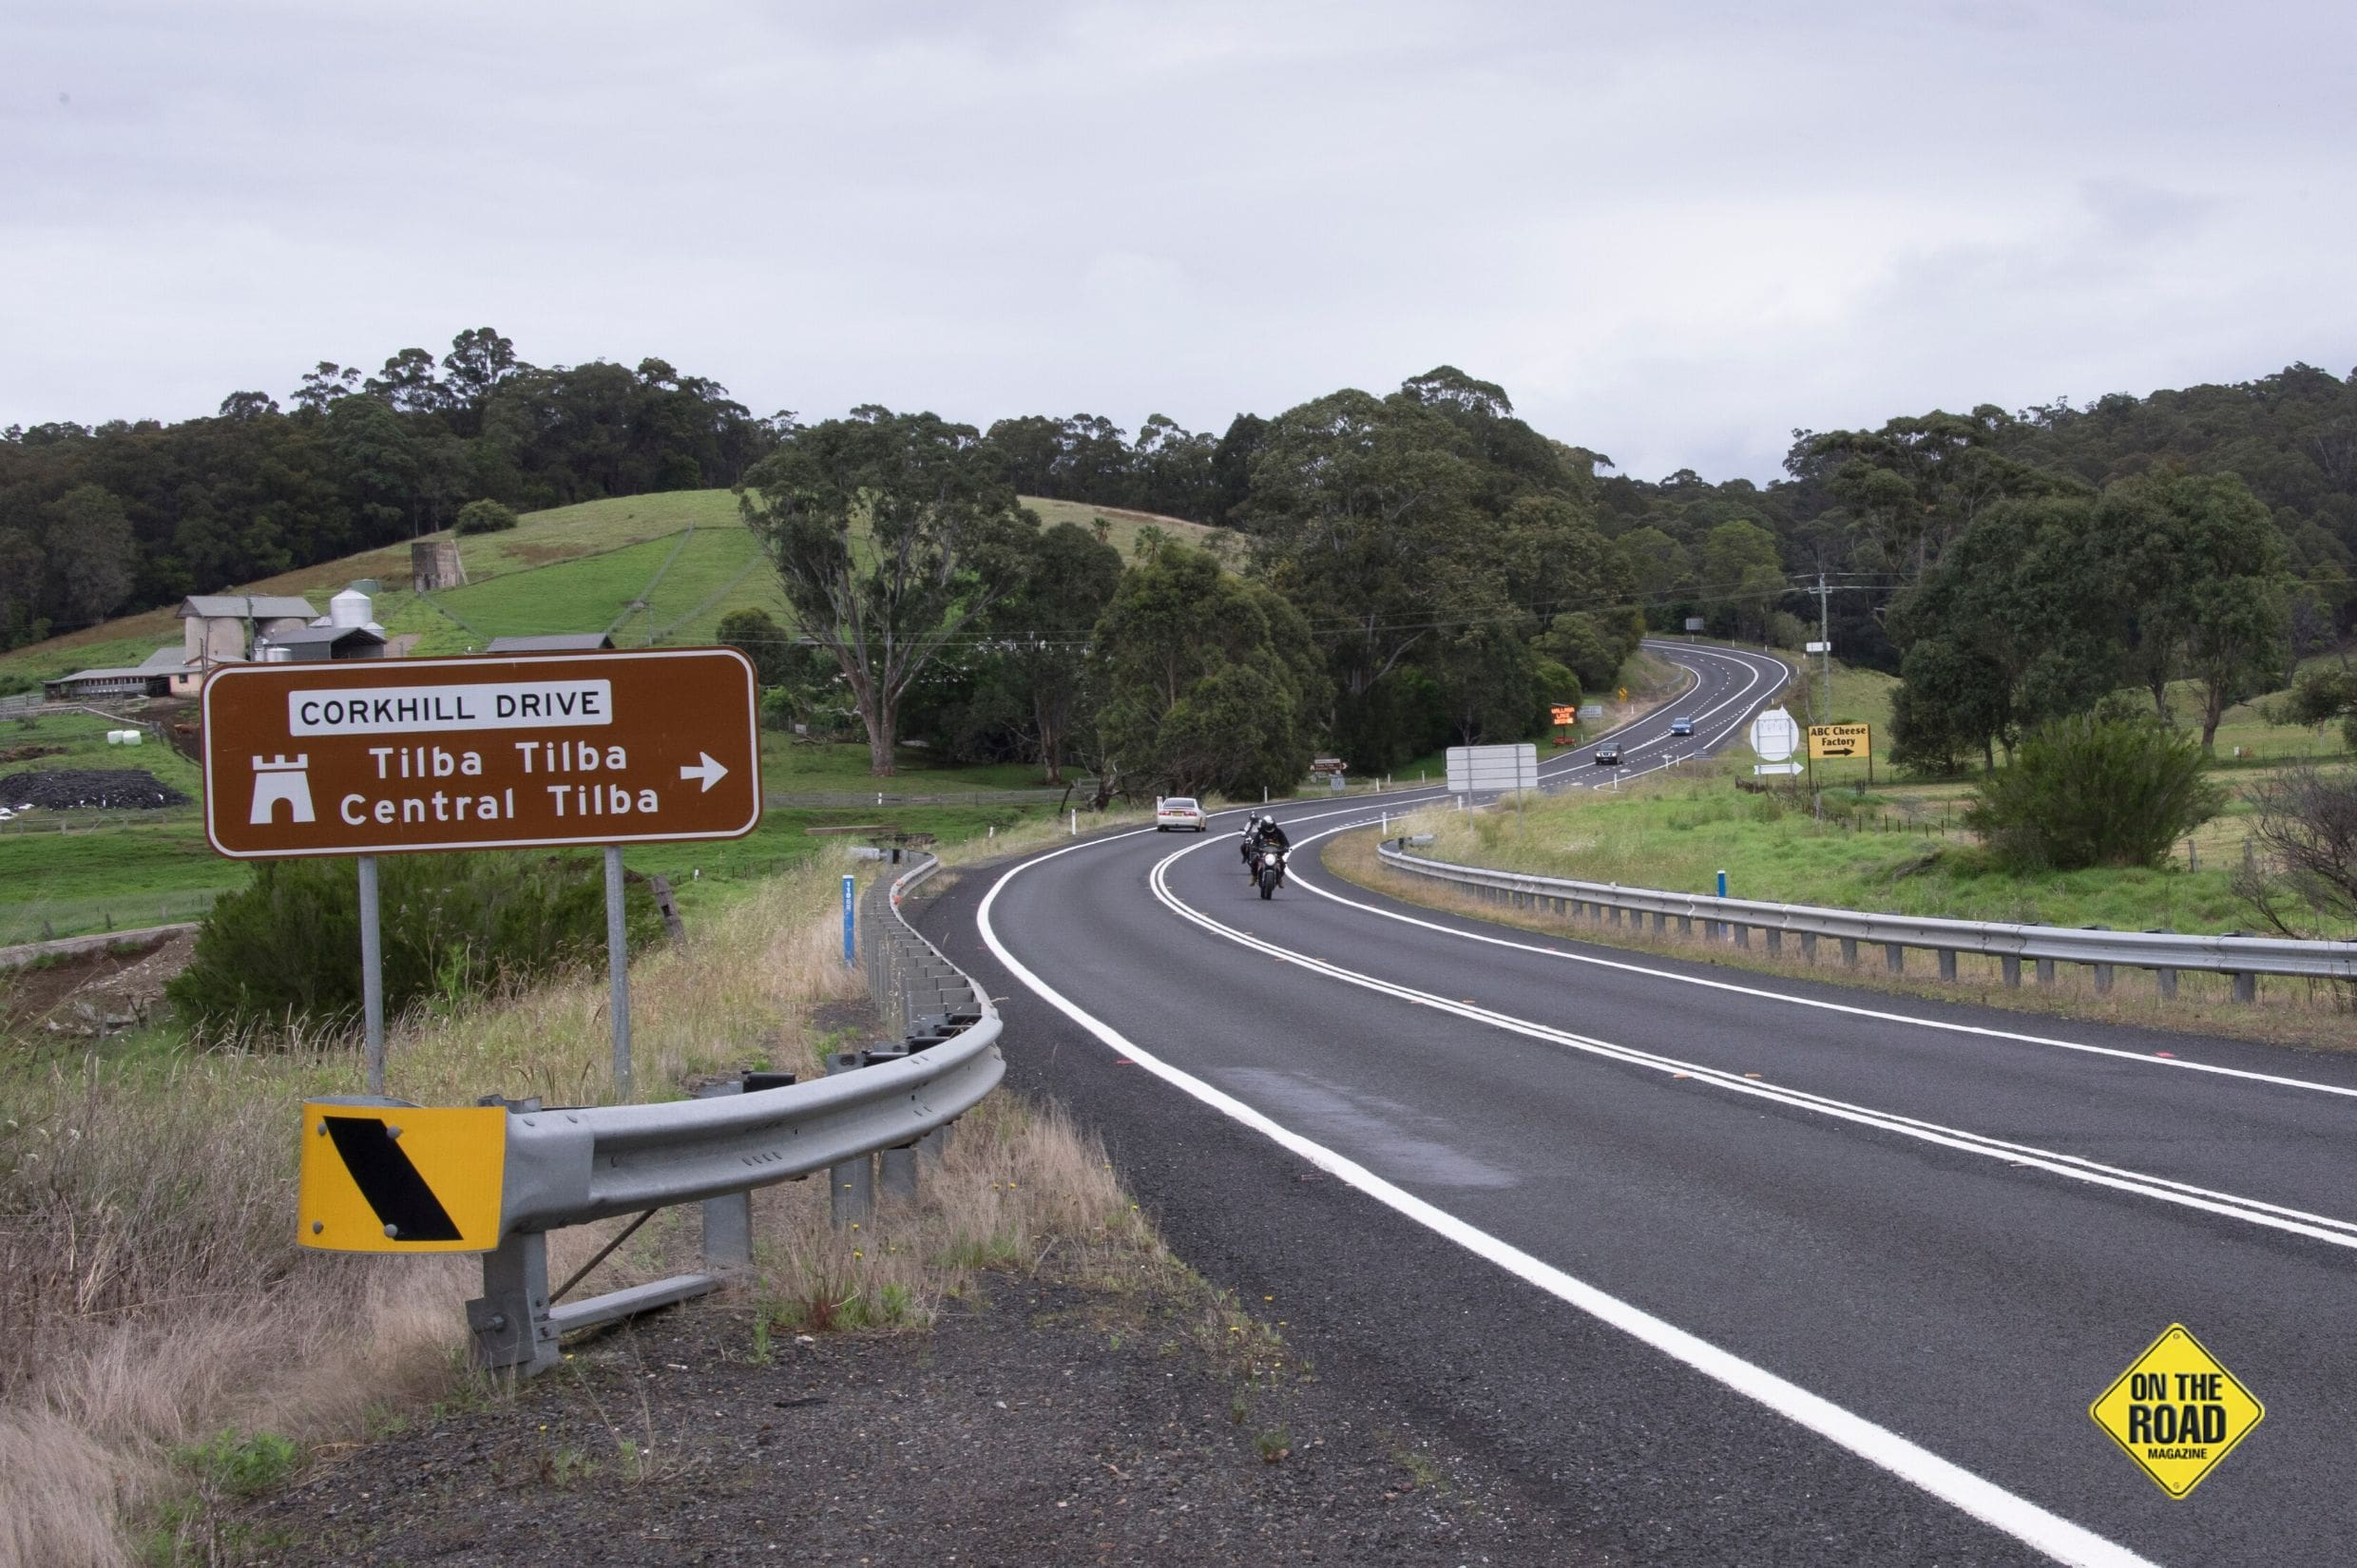 The southern exit from the Princes Highway onto the loop road that takes you to Tilba Tilba and Central Tilba. Corkhill Drive is named after William Corkhill, a famous local photographer who photographed the early